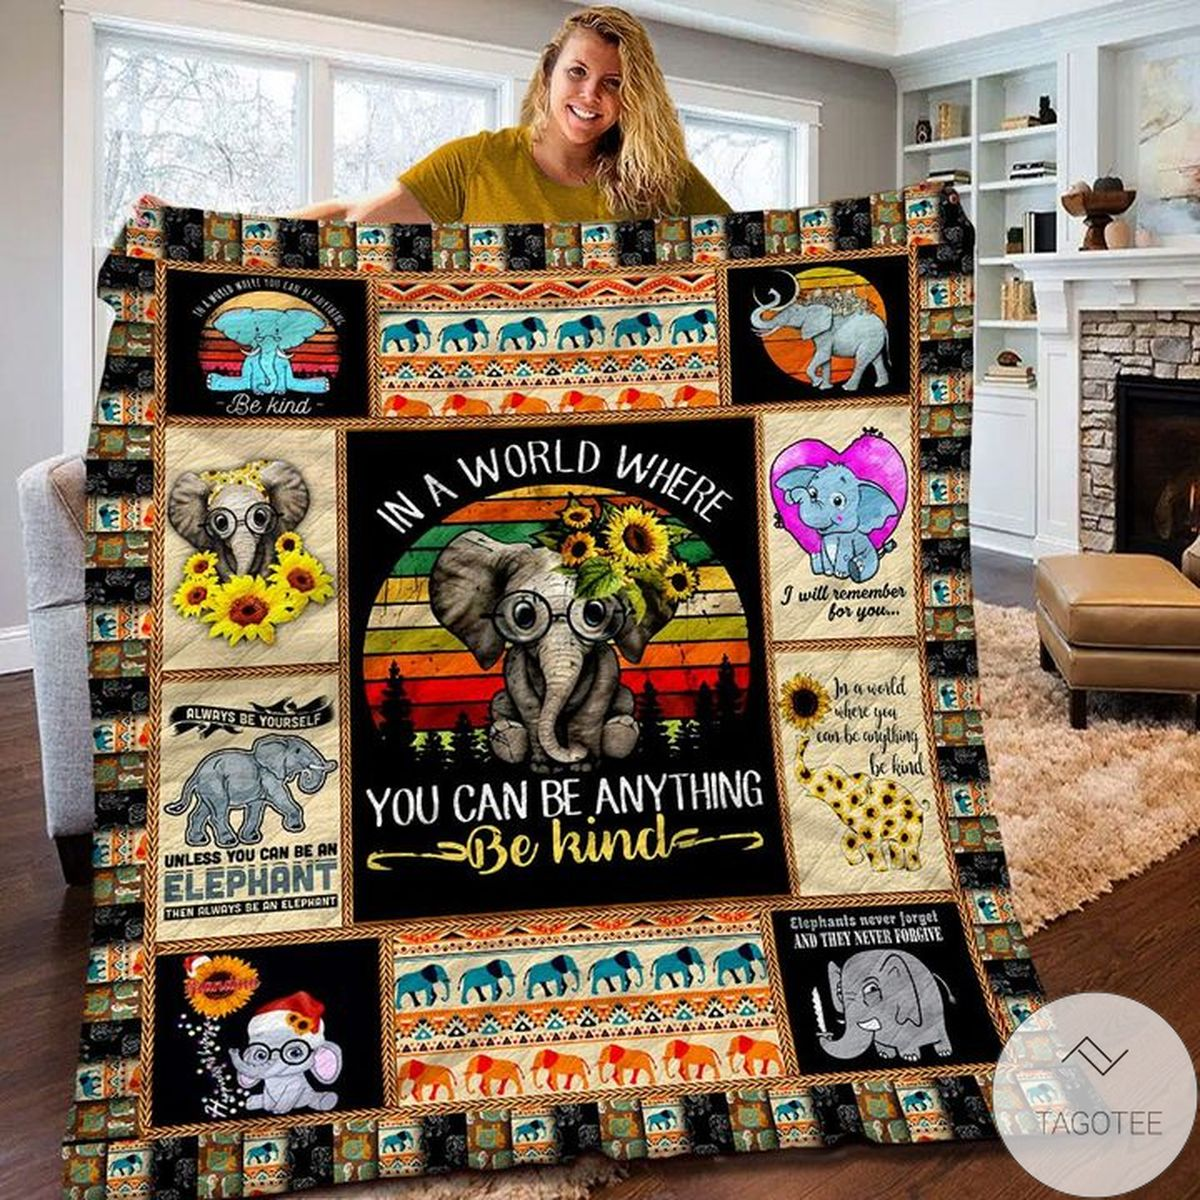 In A World Where You Can Be Anything Be Kind Elephant Quilt